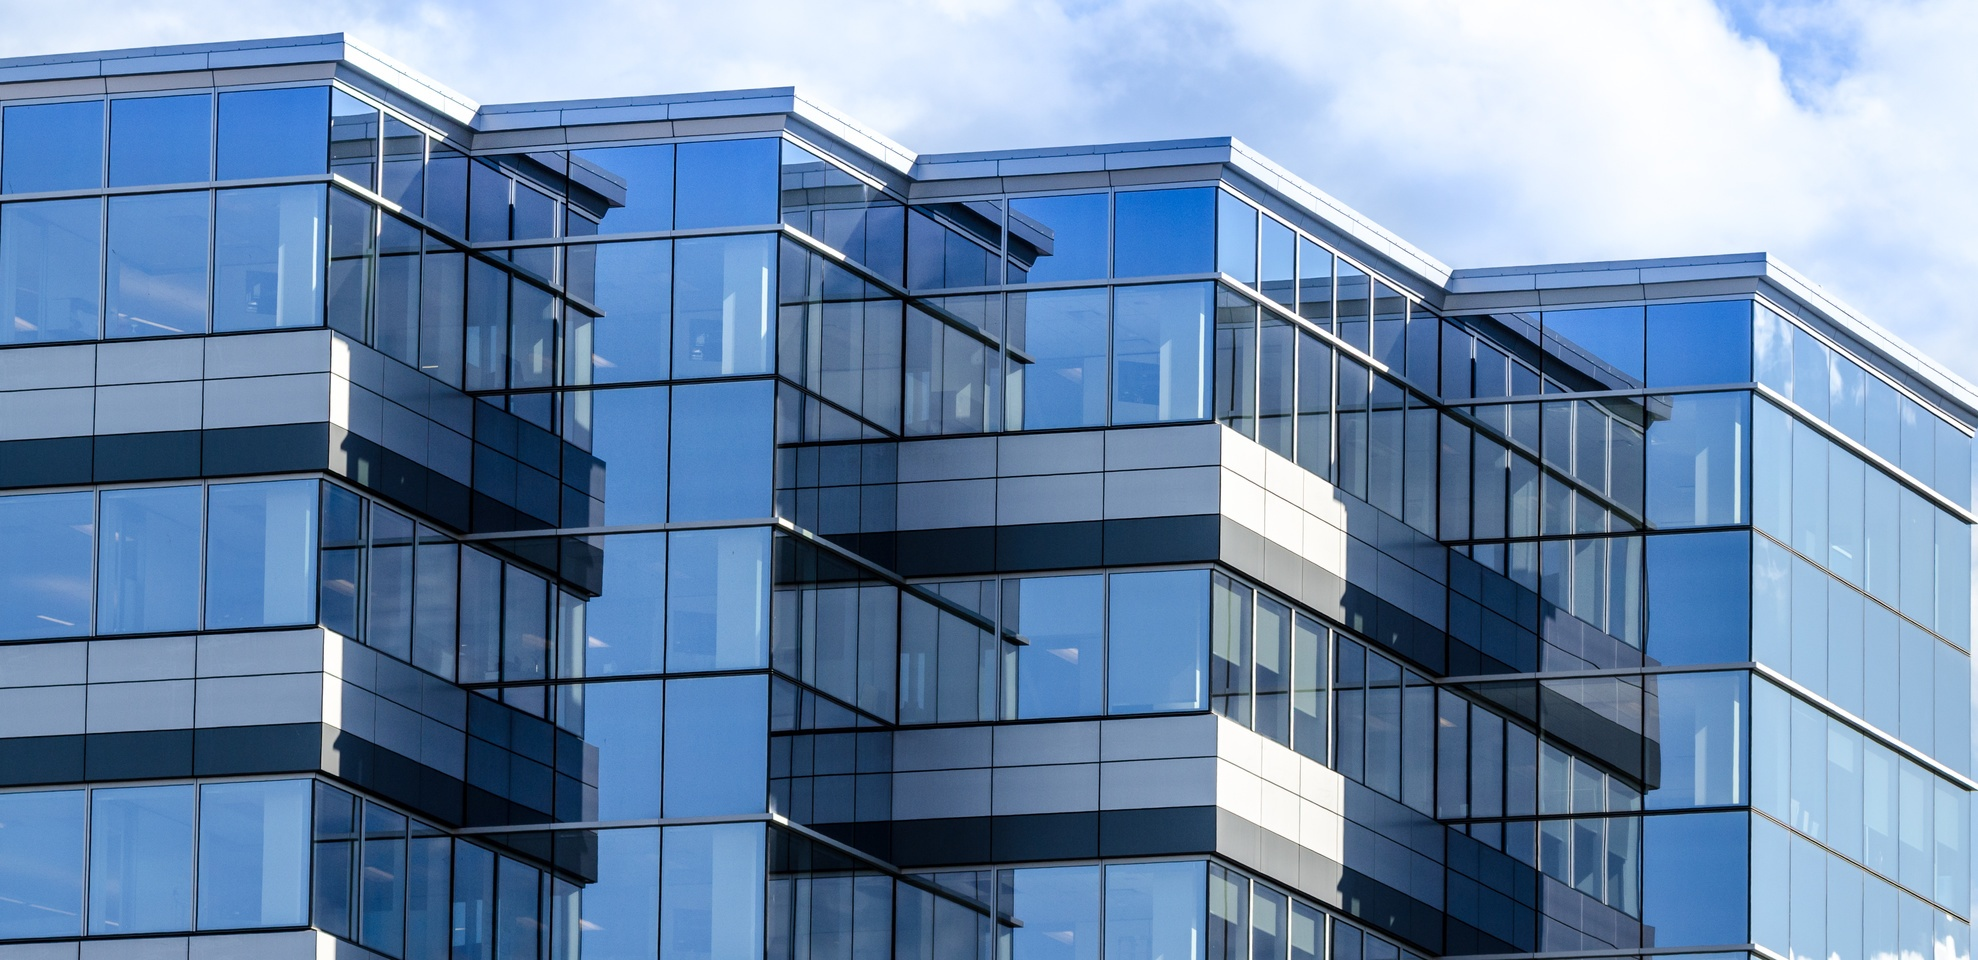 7-commercial-real-estate-markets-to-keep-an-eye-on.jpg